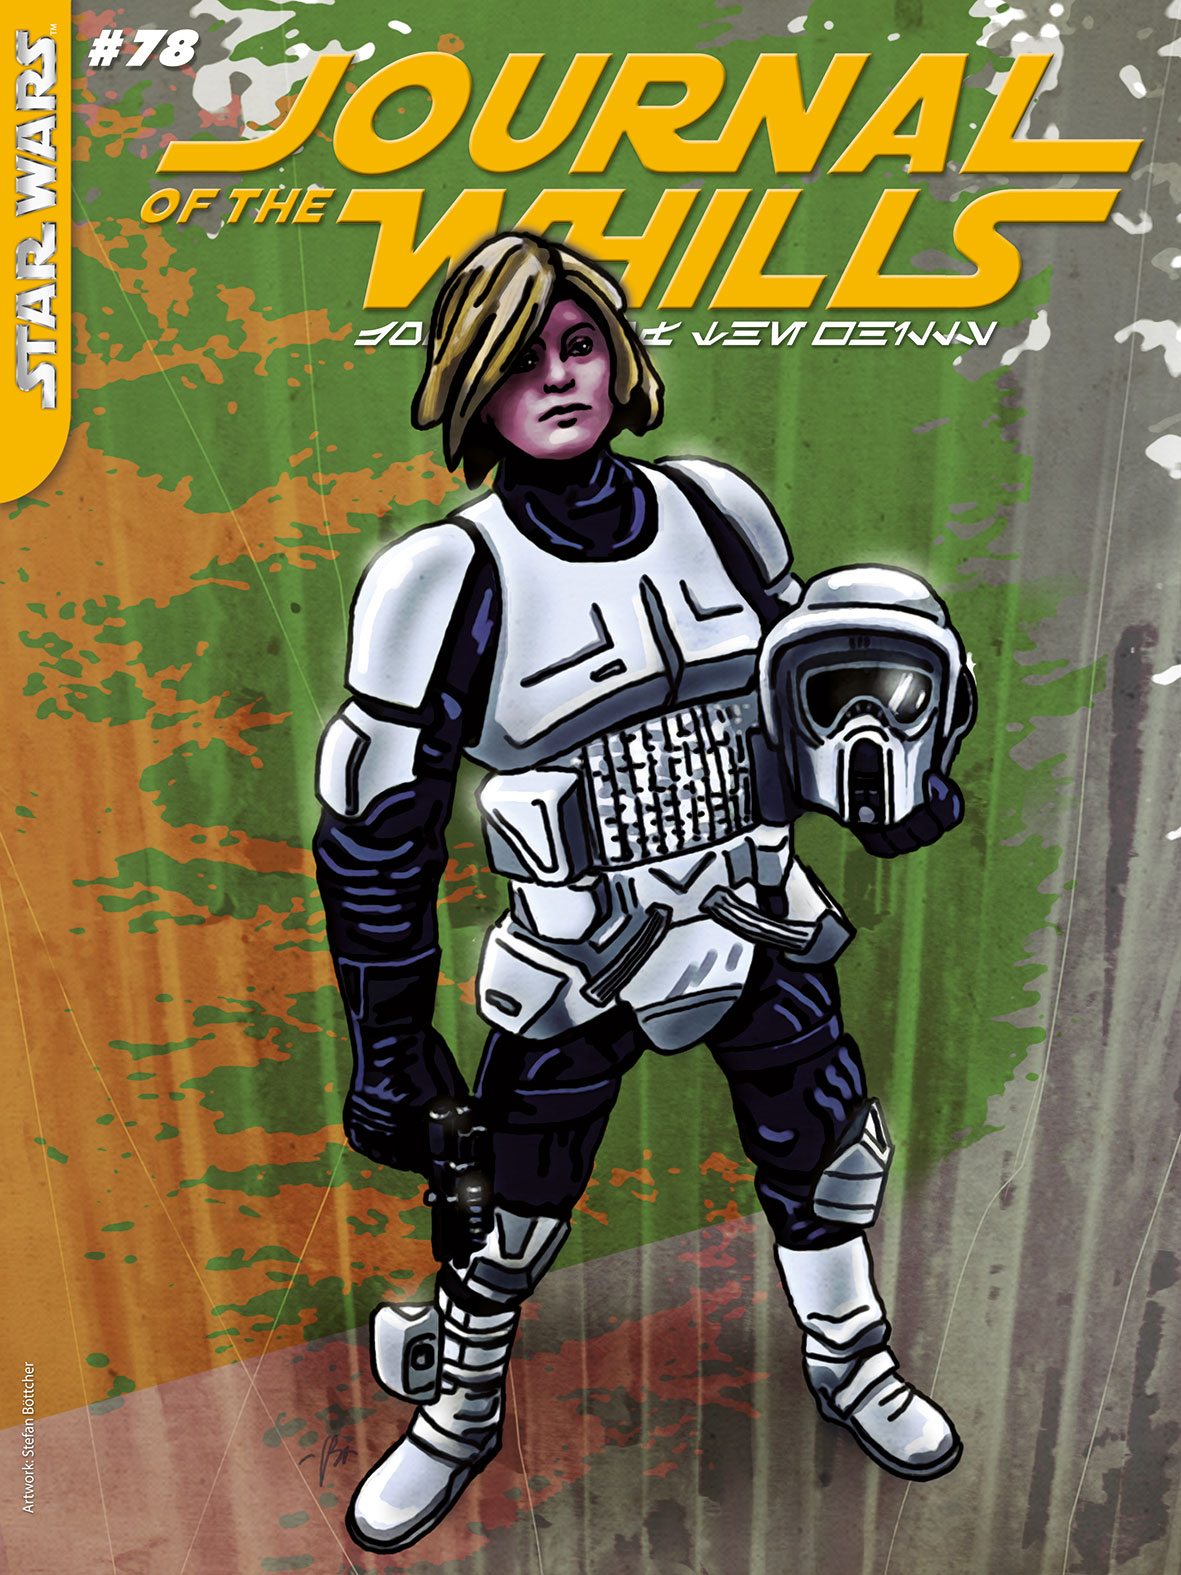 Journal of the Whills #78 (01.07.2015)